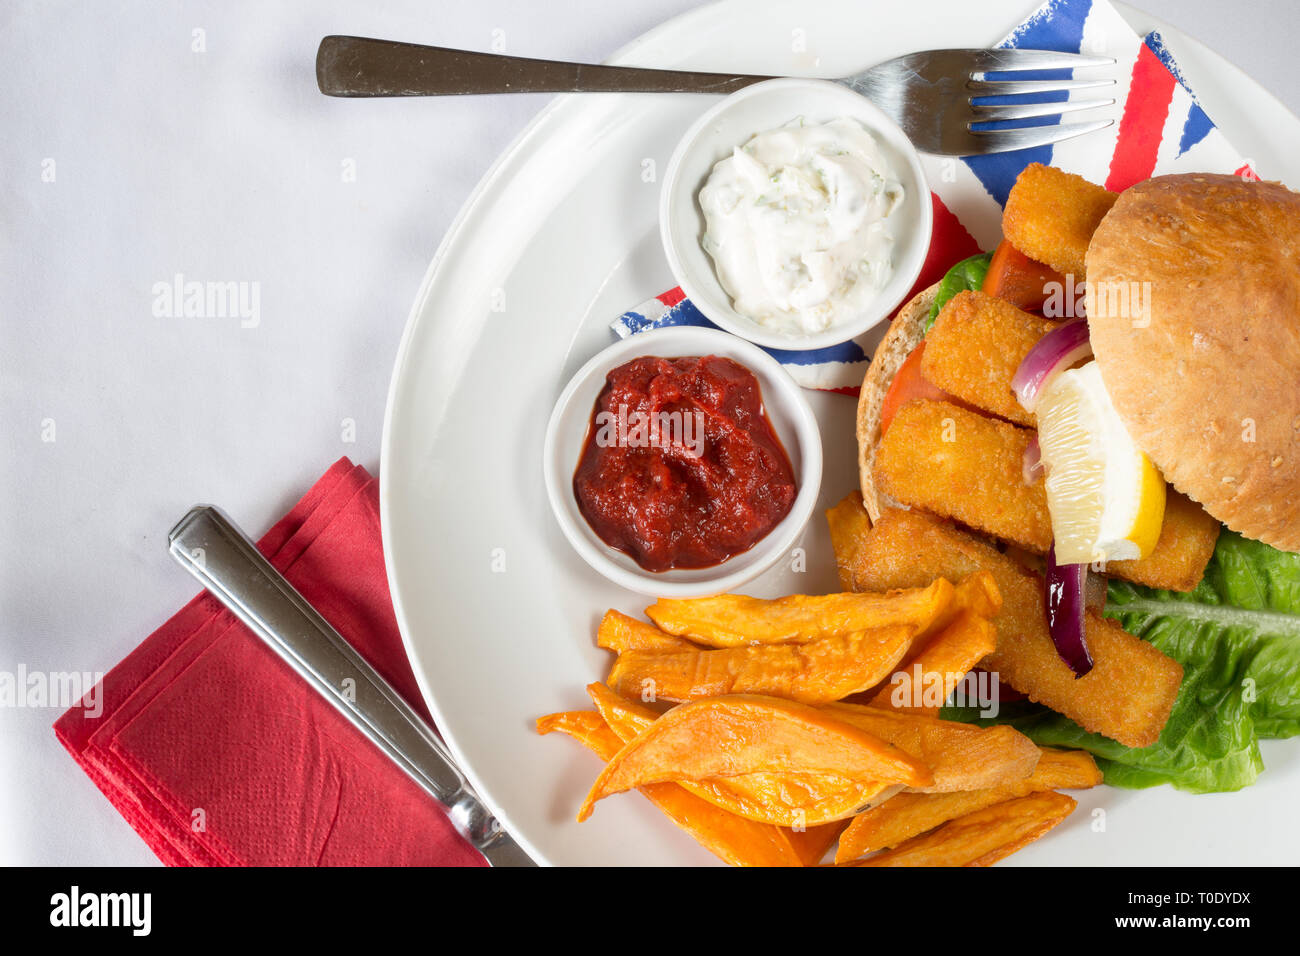 Typical English lunch snack of Fish fingers in a bun, Sweet potato fries, served with ketchup and Tartar. - Stock Image